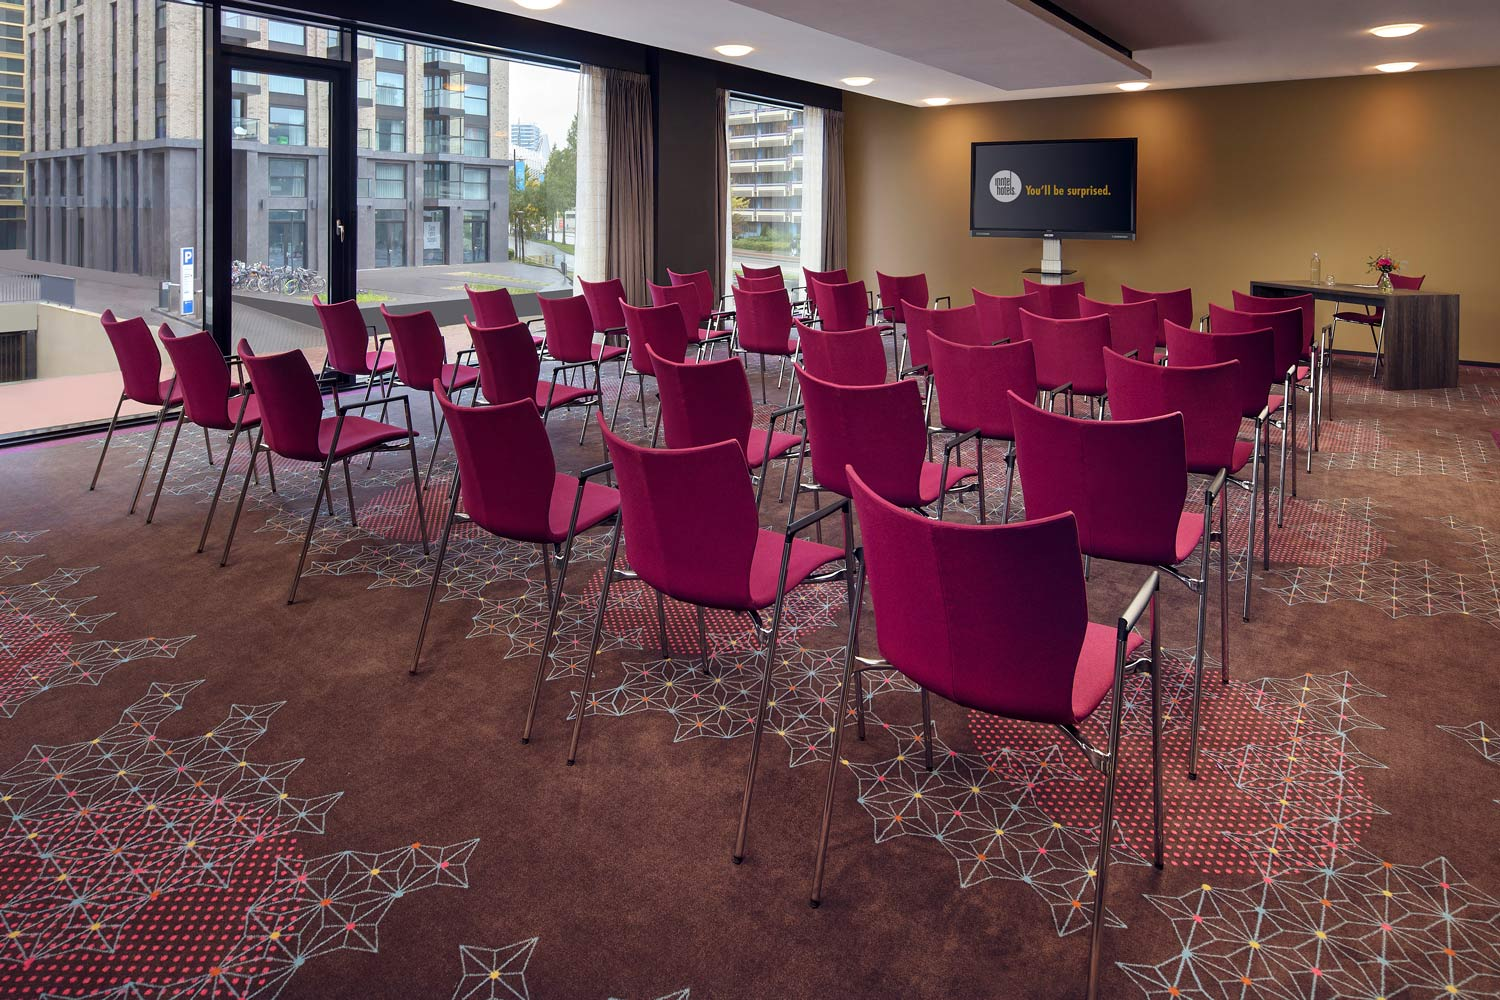 Inntel Hotels Art Eindhoven - Meeting & Events Theatre